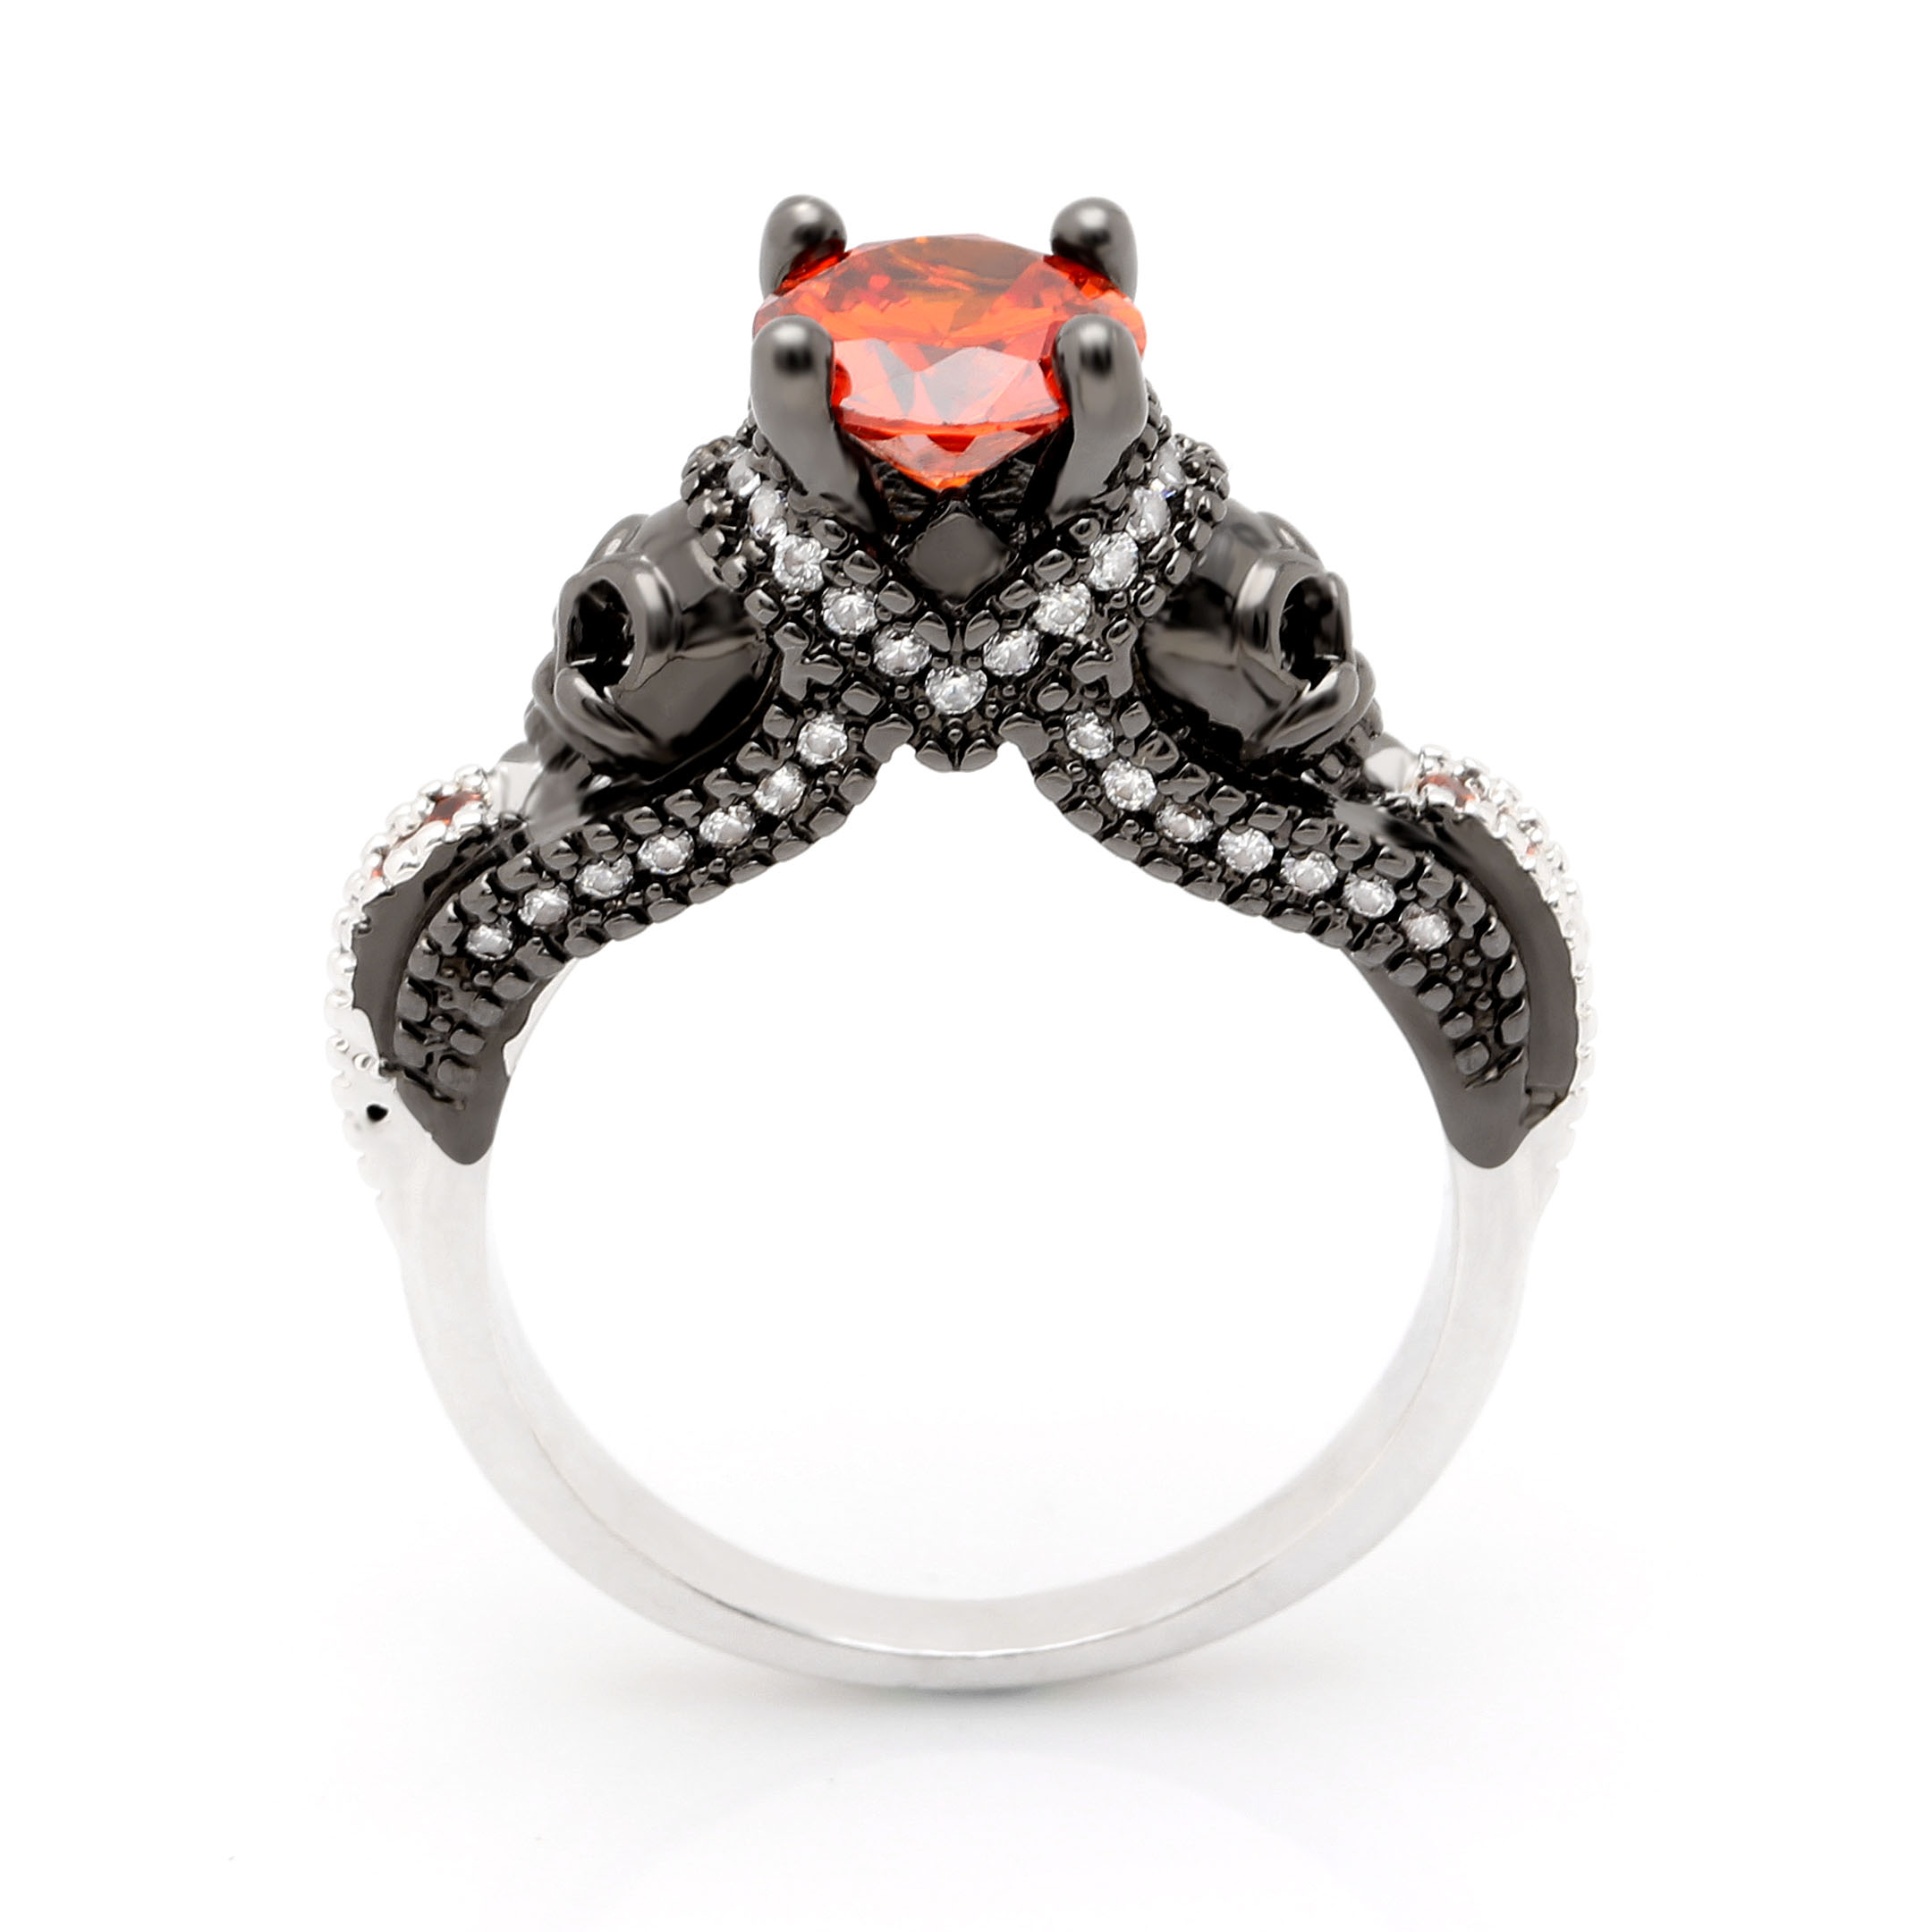 punk rings idea of beautiful engagement size gothic new uk rock full wedding